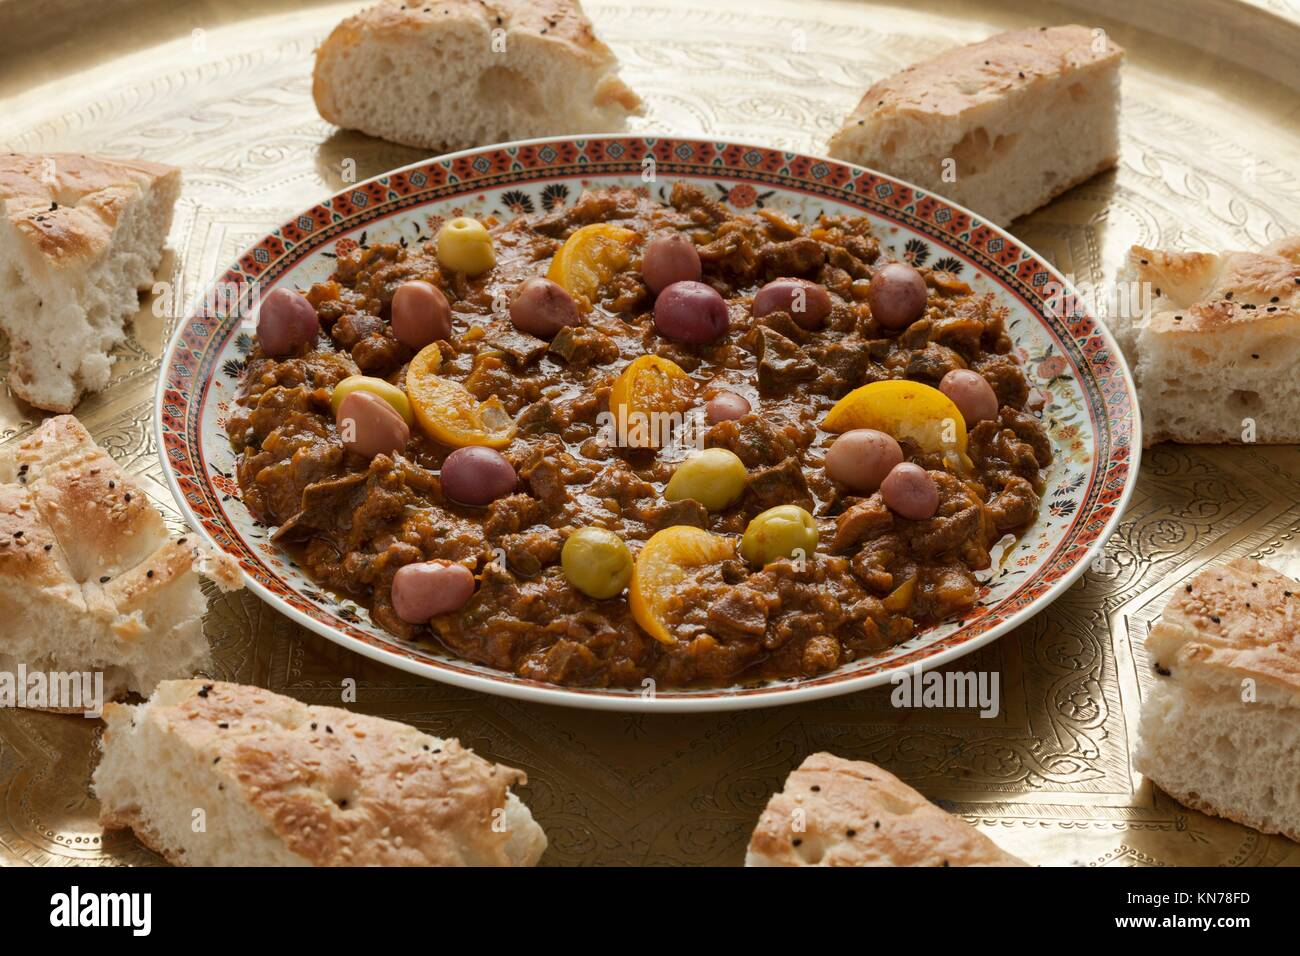 Dish with traditional moroccan kercha and bread for Eid al-Adha. - Stock Image